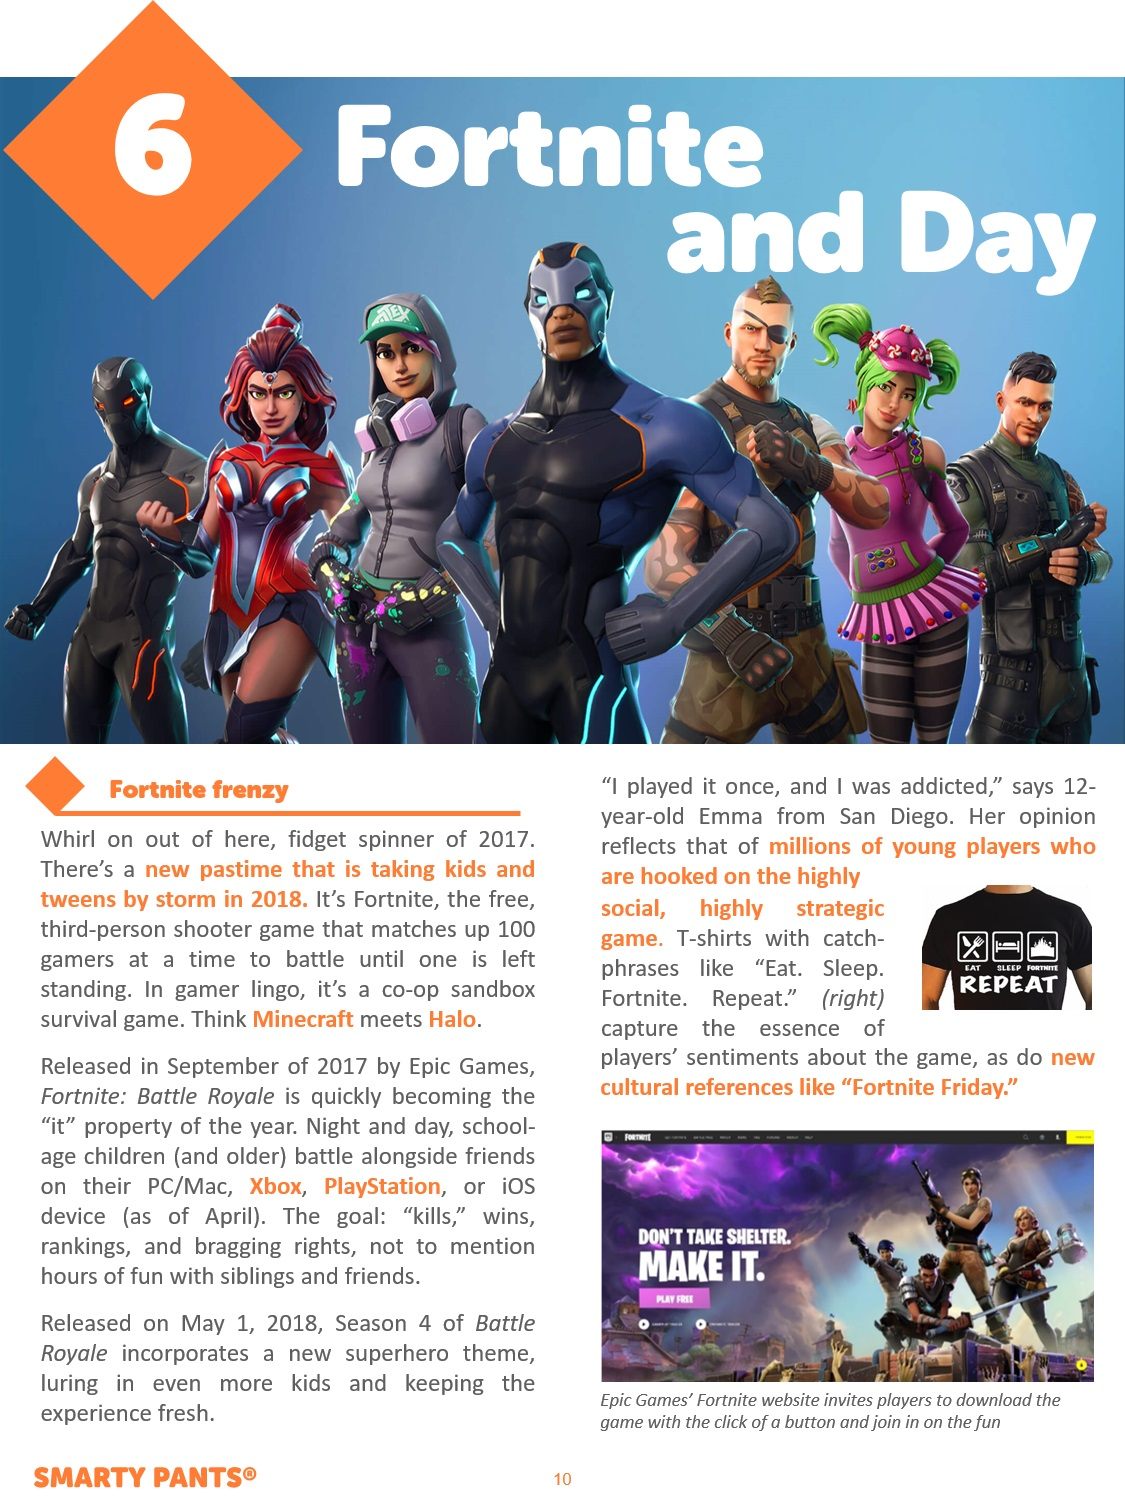 Fortnite and Day